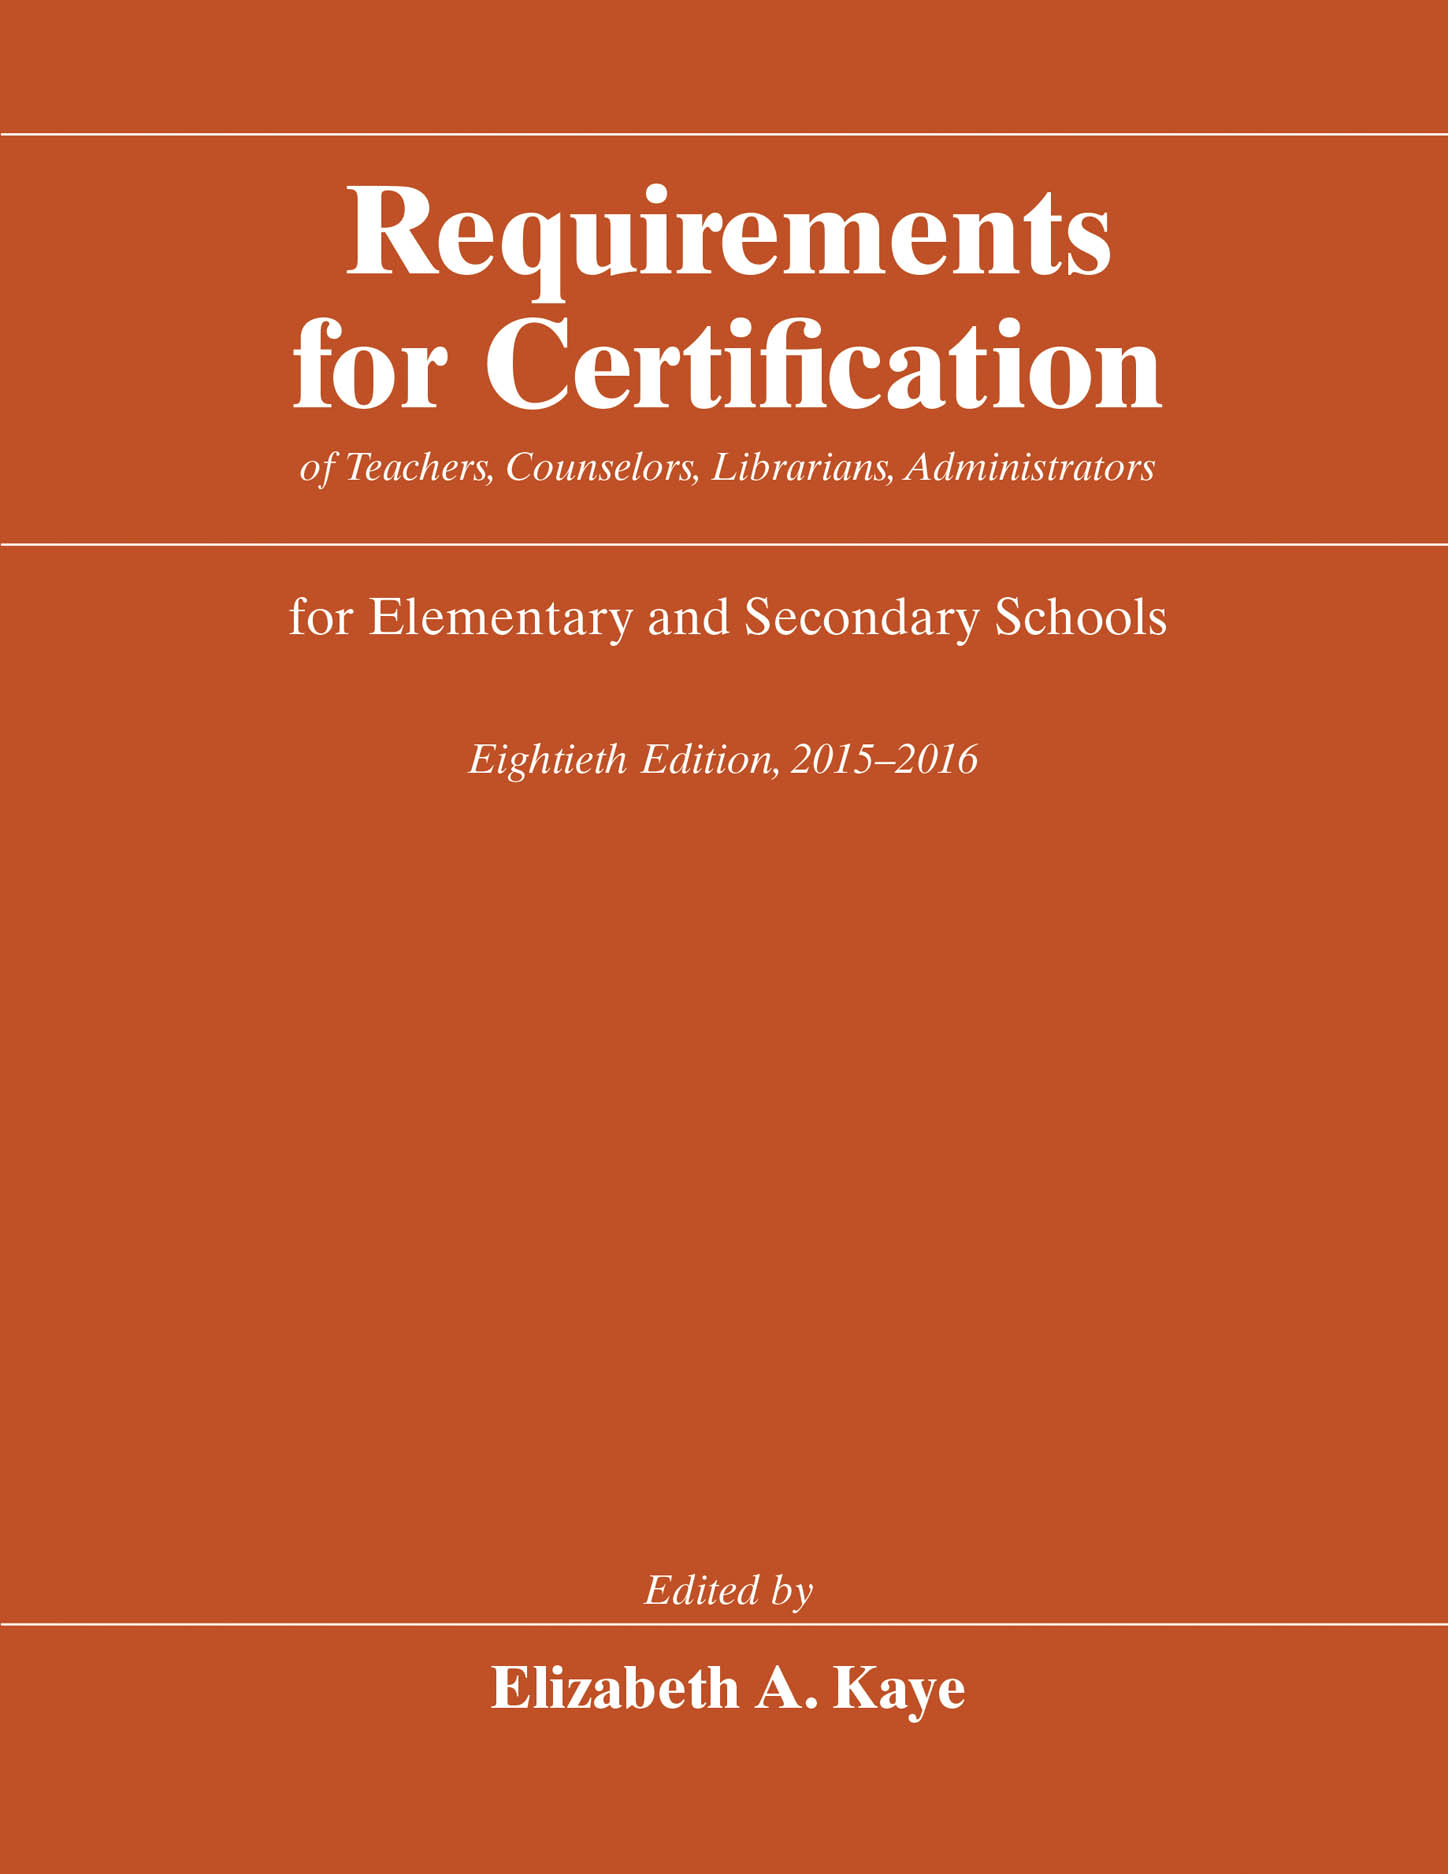 Requirements for Certification of Teachers, Counselors, Librarians, Administrators for Elementary and Secondary Schools, Eightieth Edition, 2015-2016